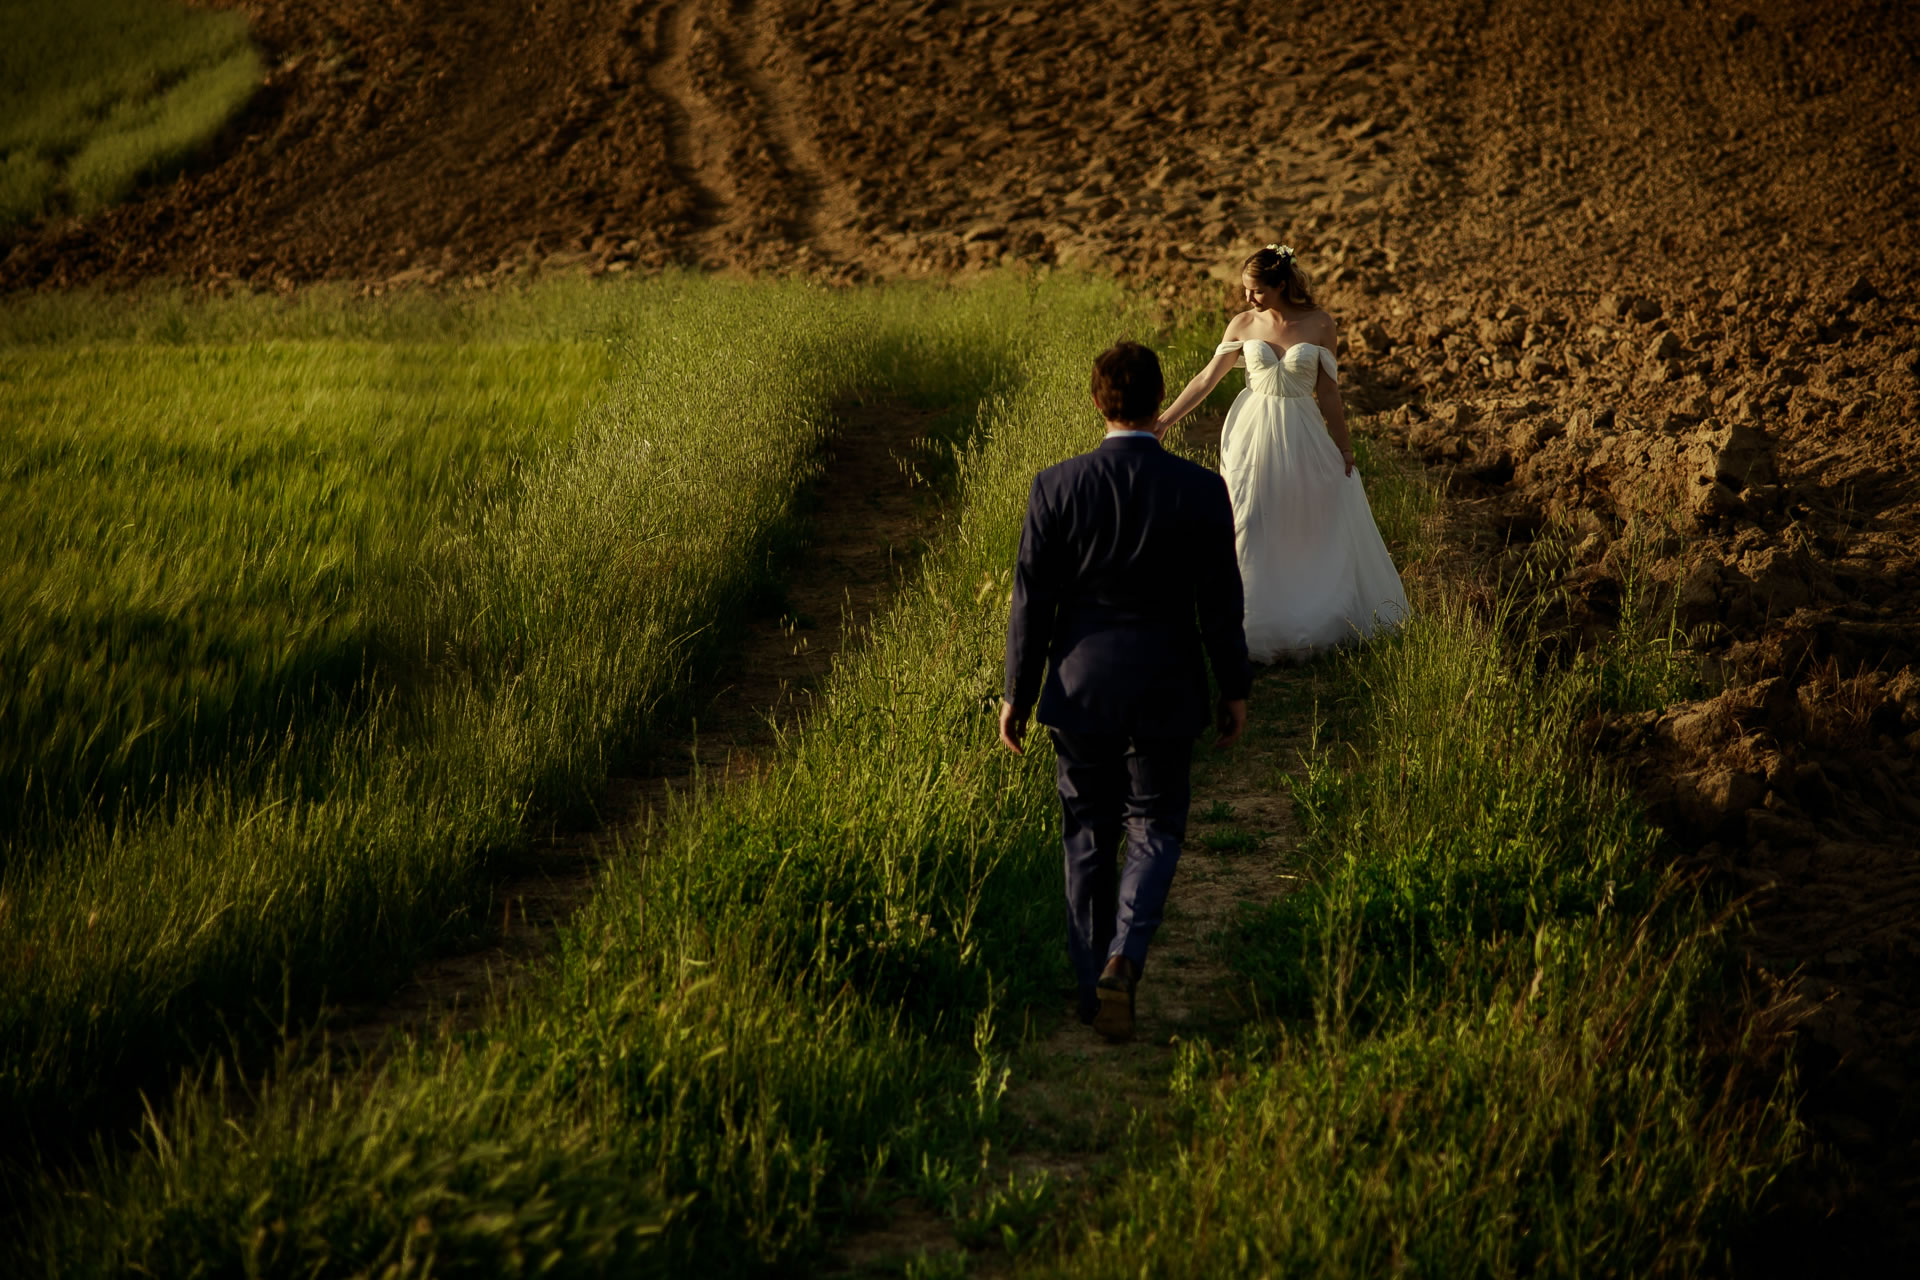 Together - 34 :: Wedding in Perugia countryside. Jean and Toby :: Luxury wedding photography - 33 :: Together - 34